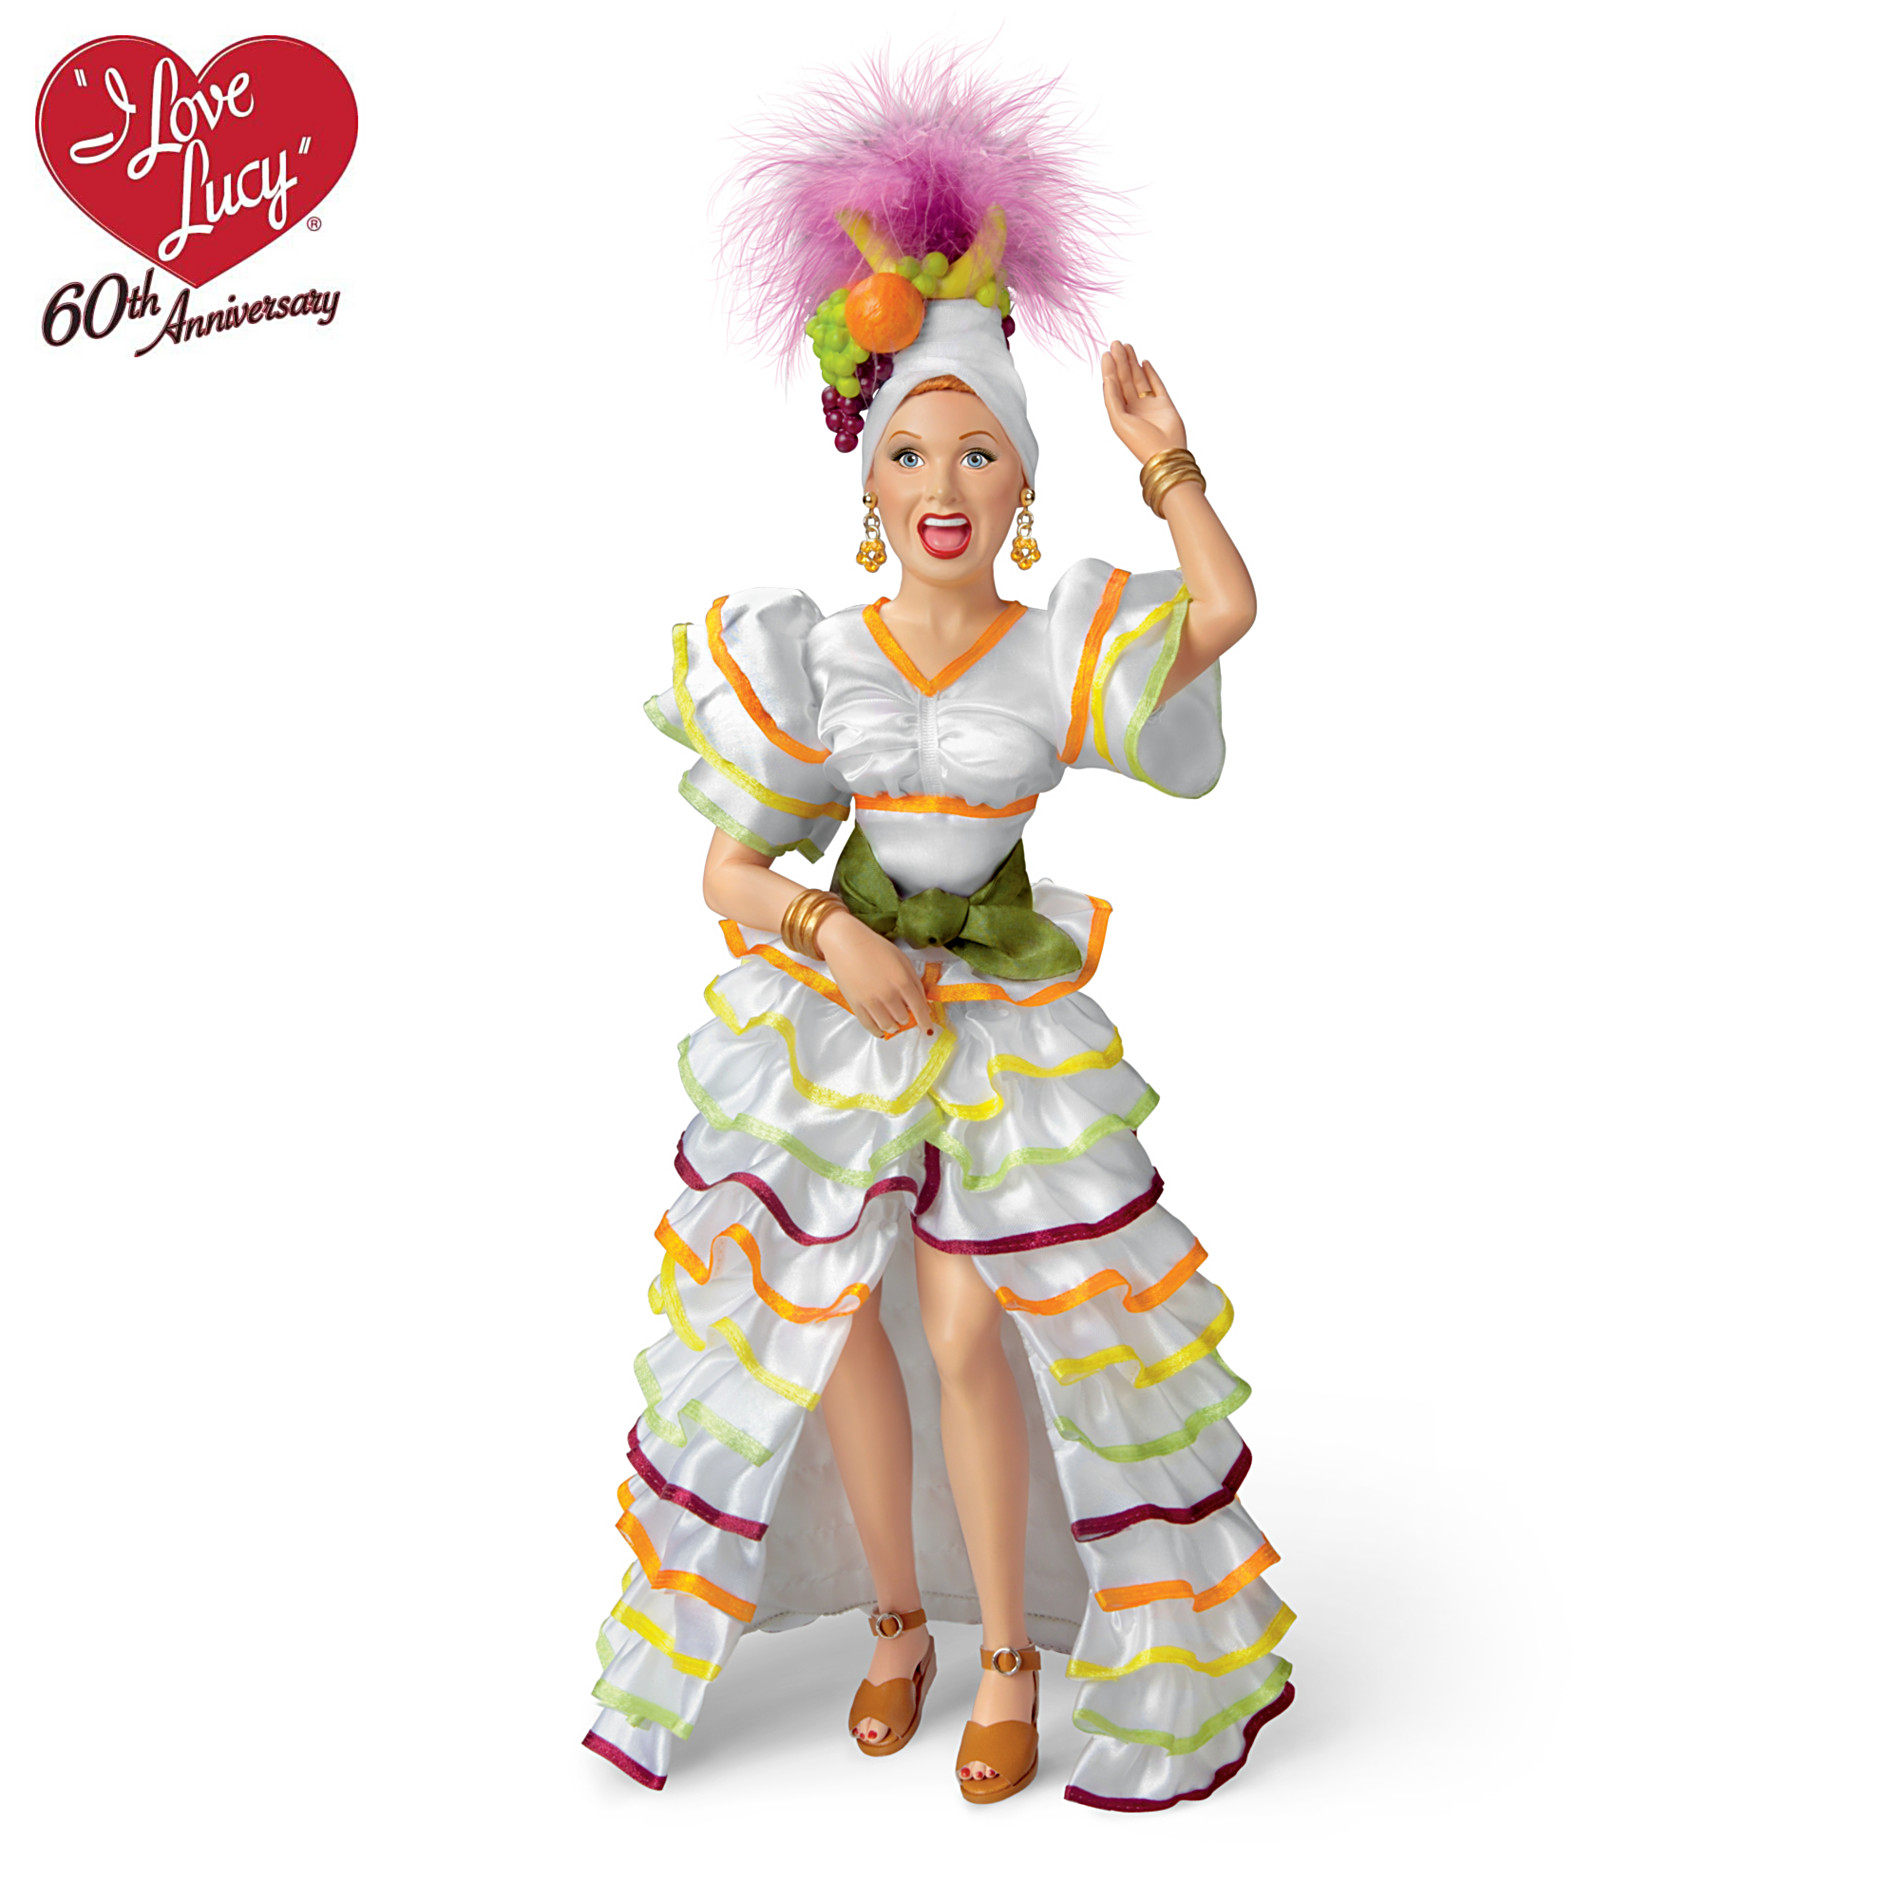 The Ashton Drake Galleries I LOVE LUCY Be A Pal Fashion Doll at Sears.com